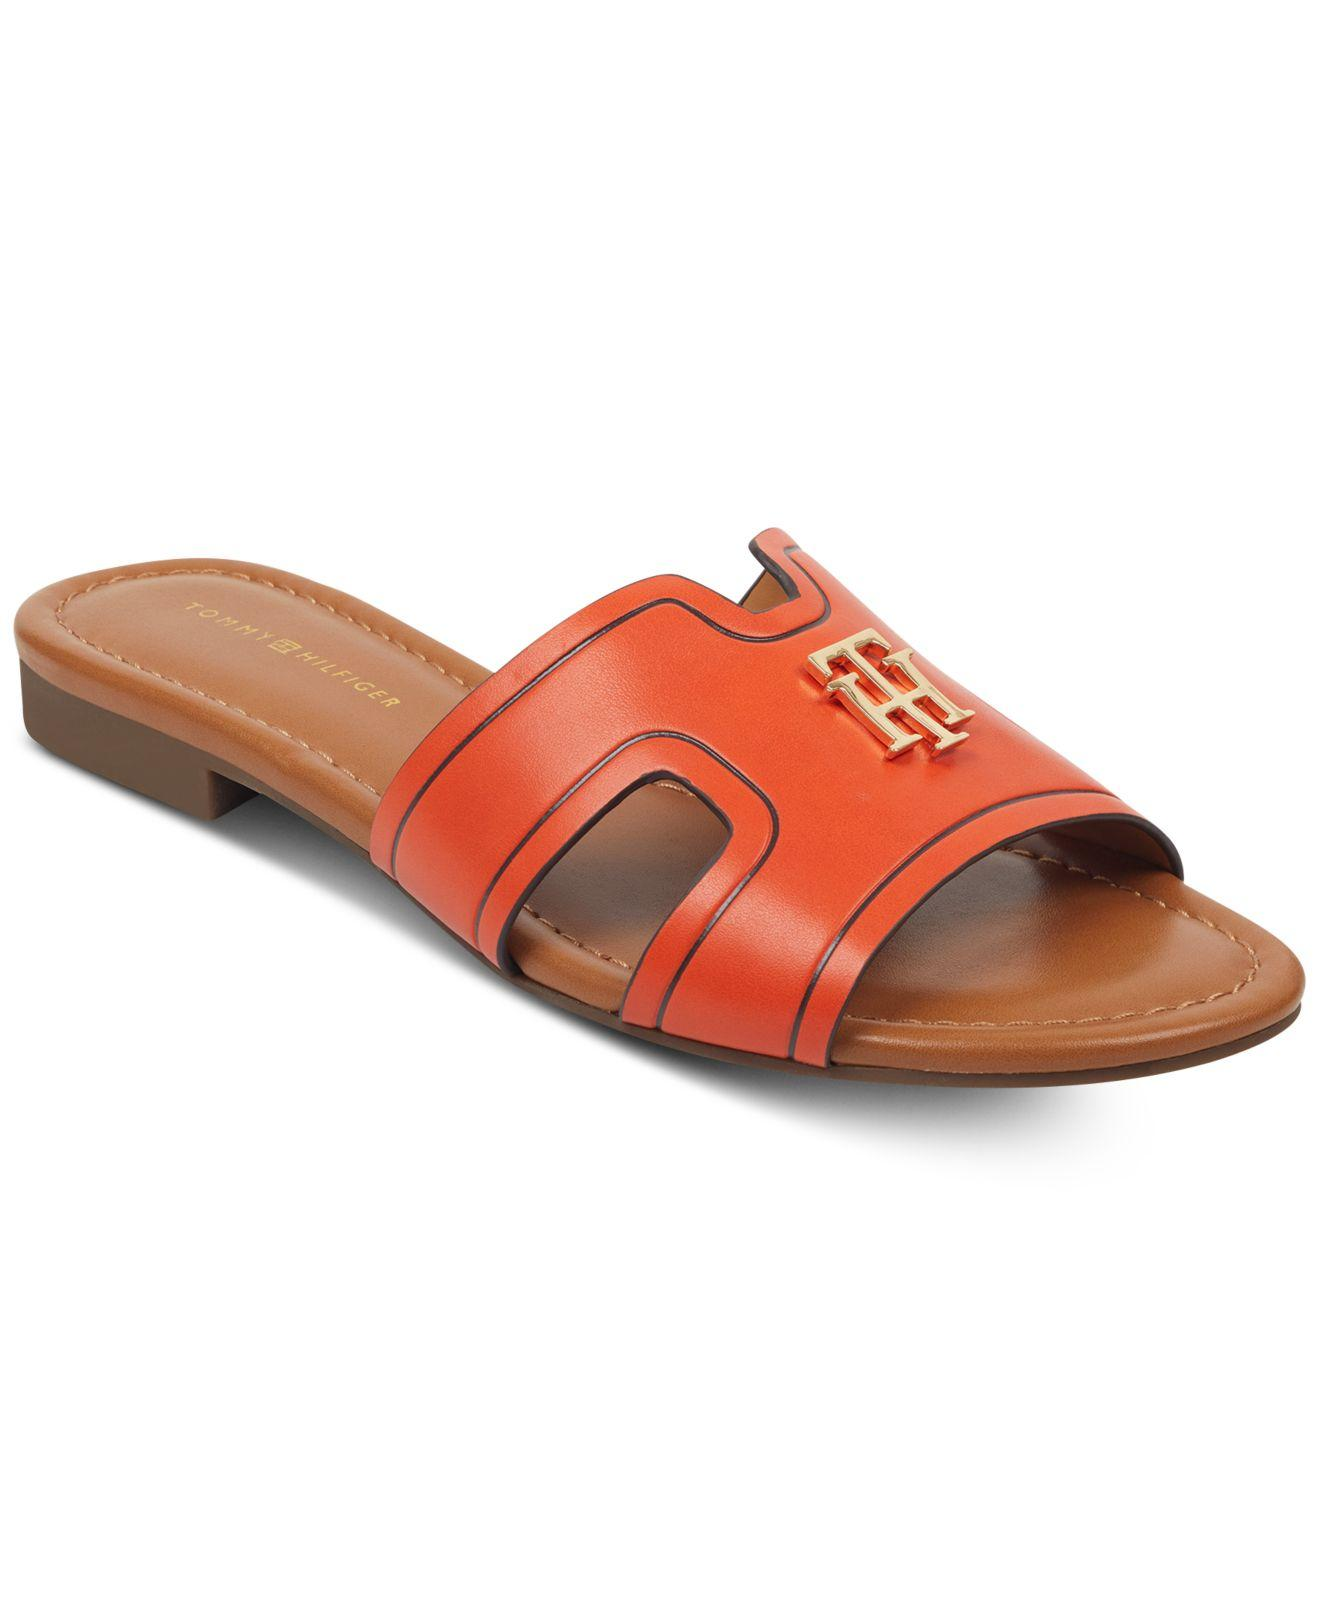 4439f98b9 Lyst - Tommy Hilfiger Sugari Flat Sandals in Orange